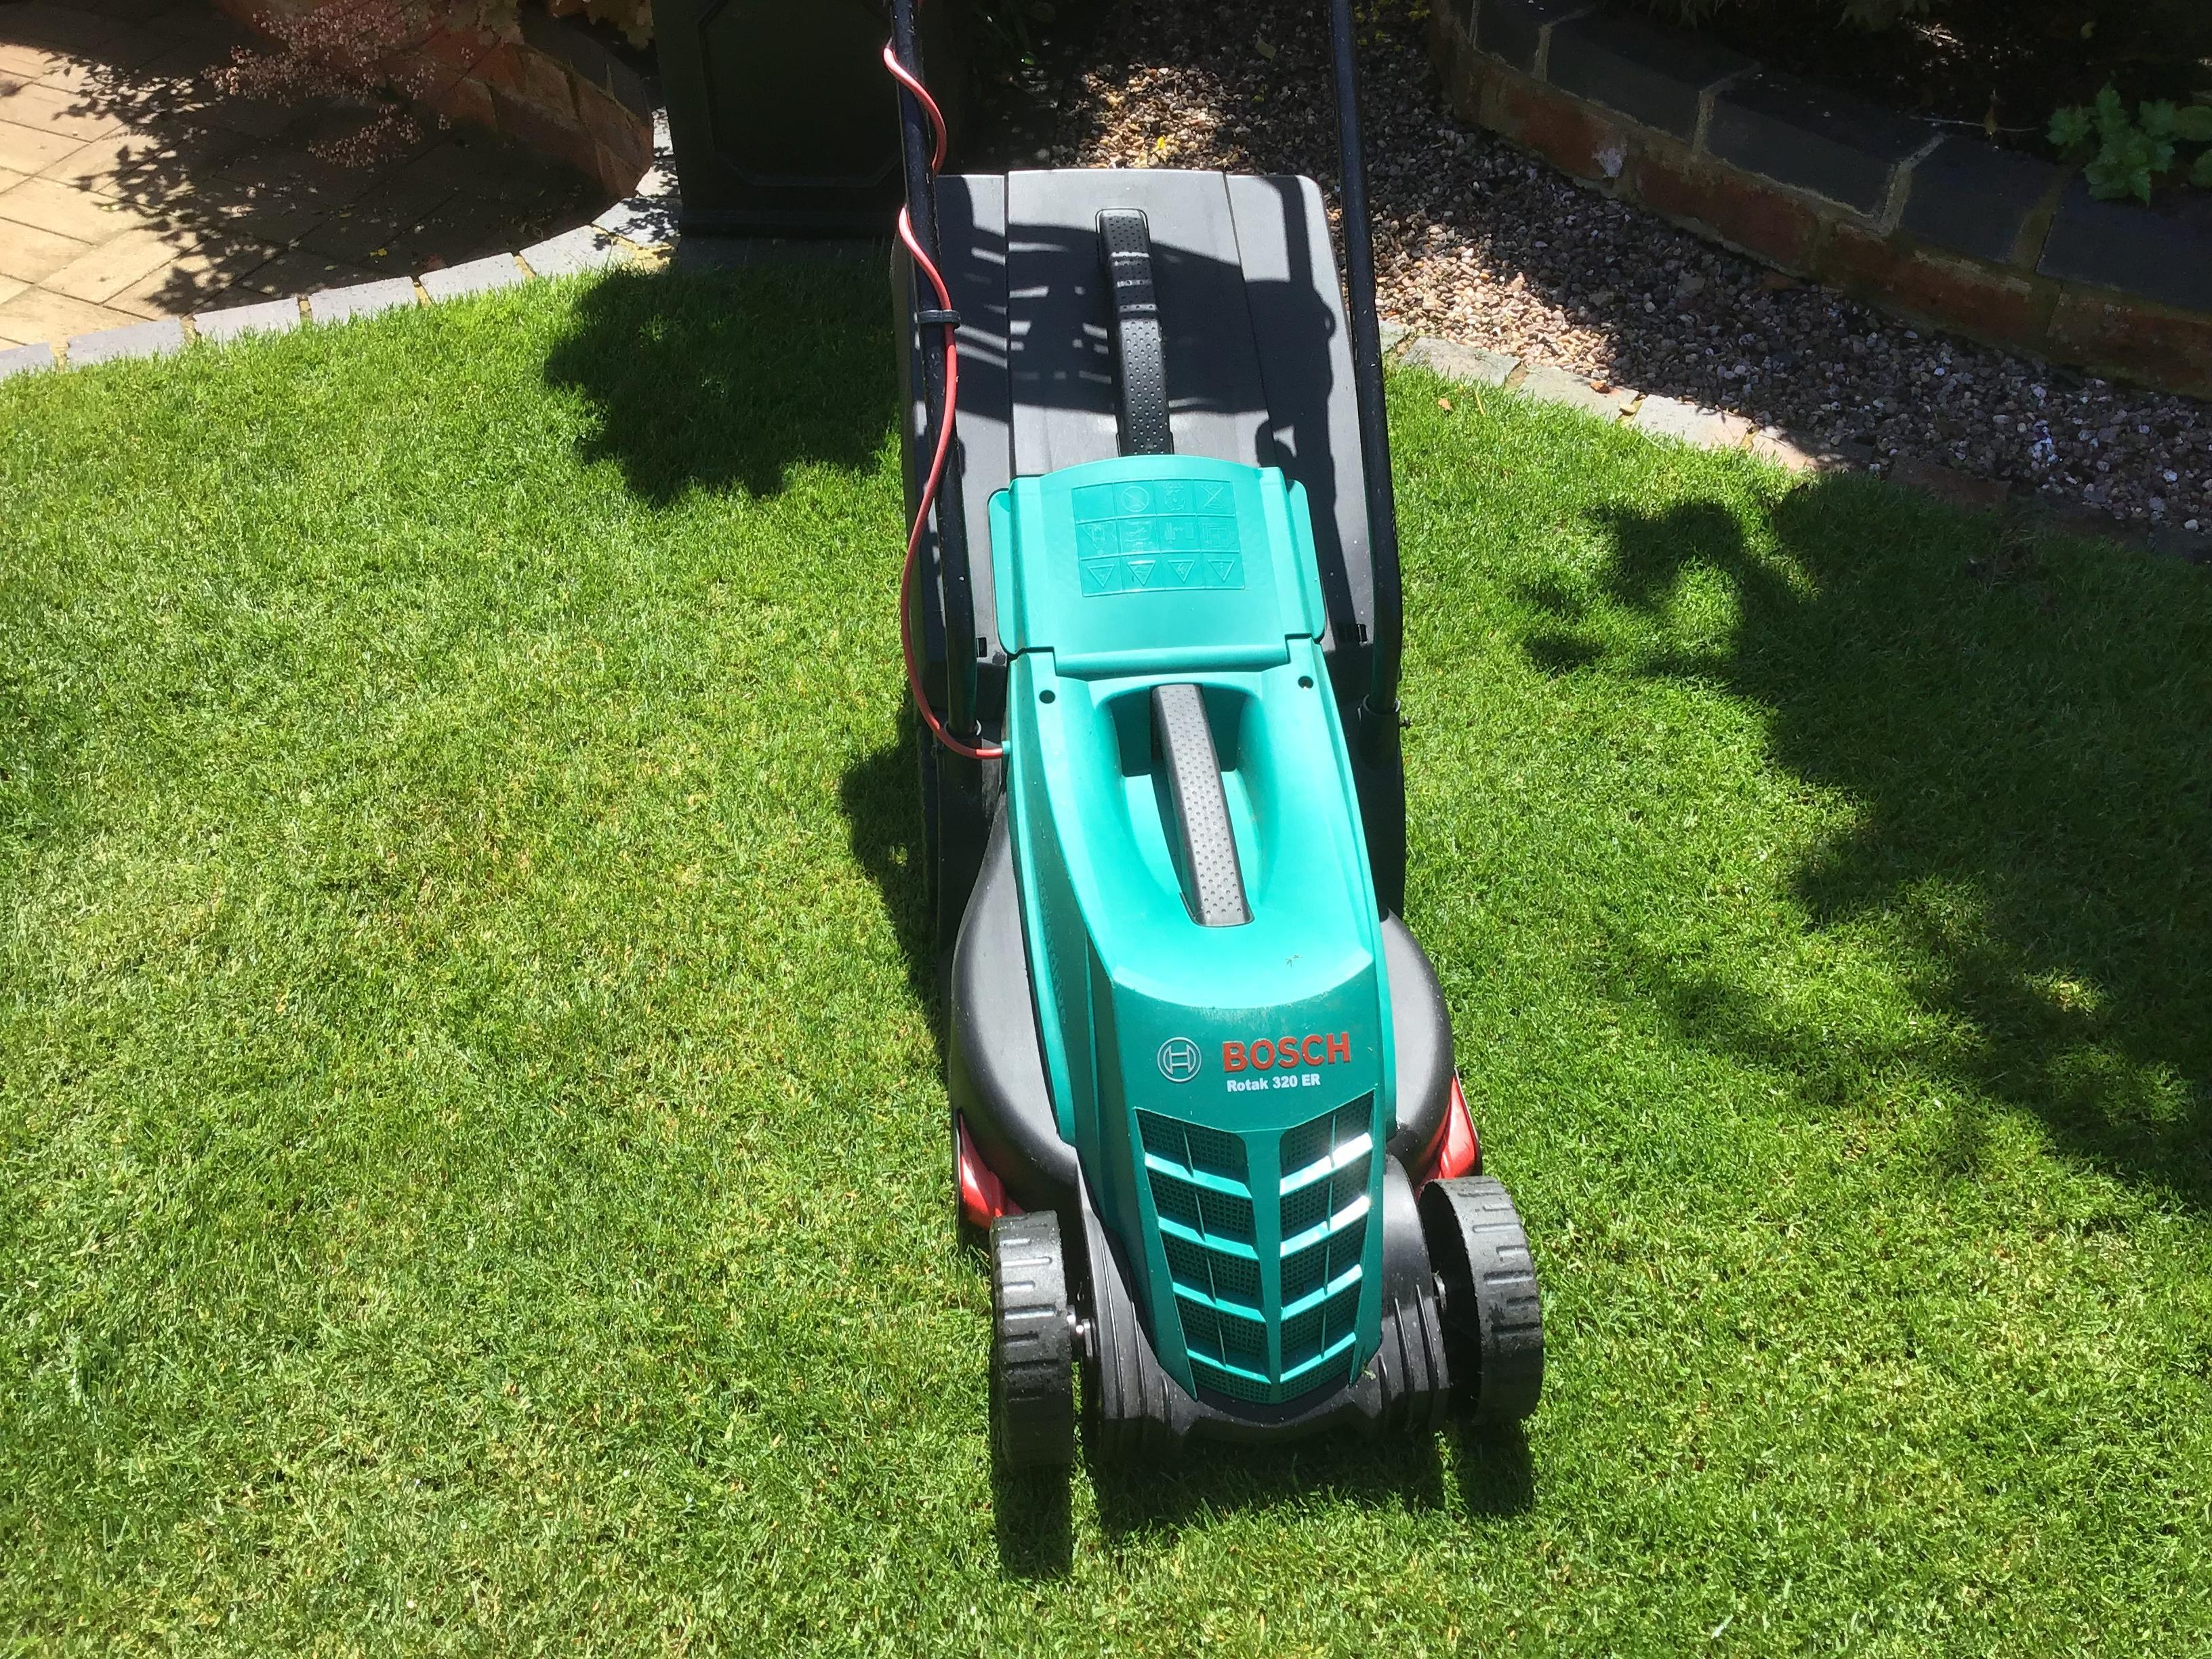 Bosch rotary electric lawn mower